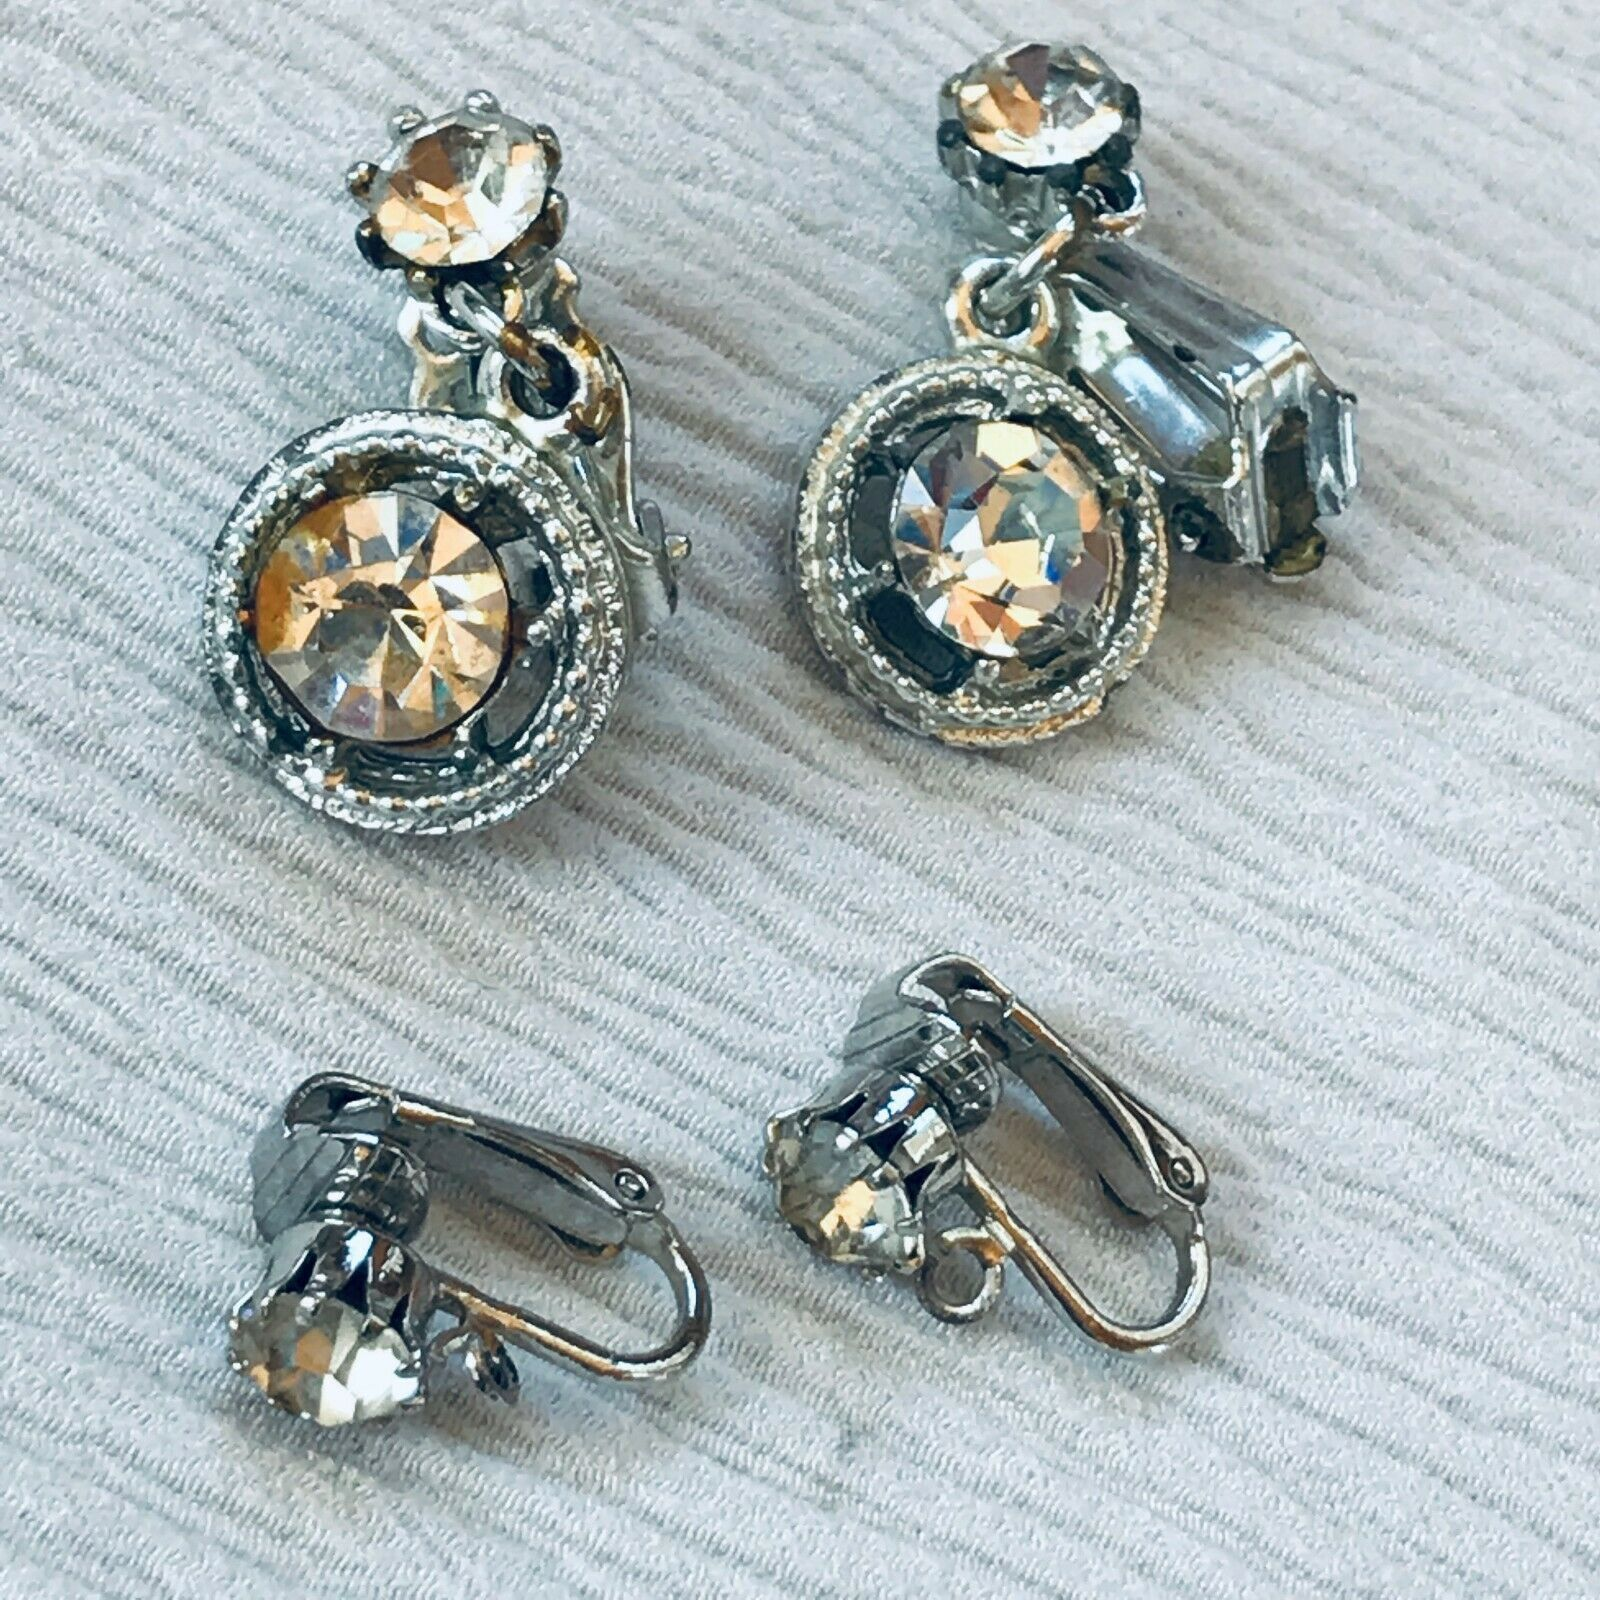 Primary image for Vintage Lot of 2 Clear Rhinestone Simple Round SIlvertone Dangle Clip Earrings –